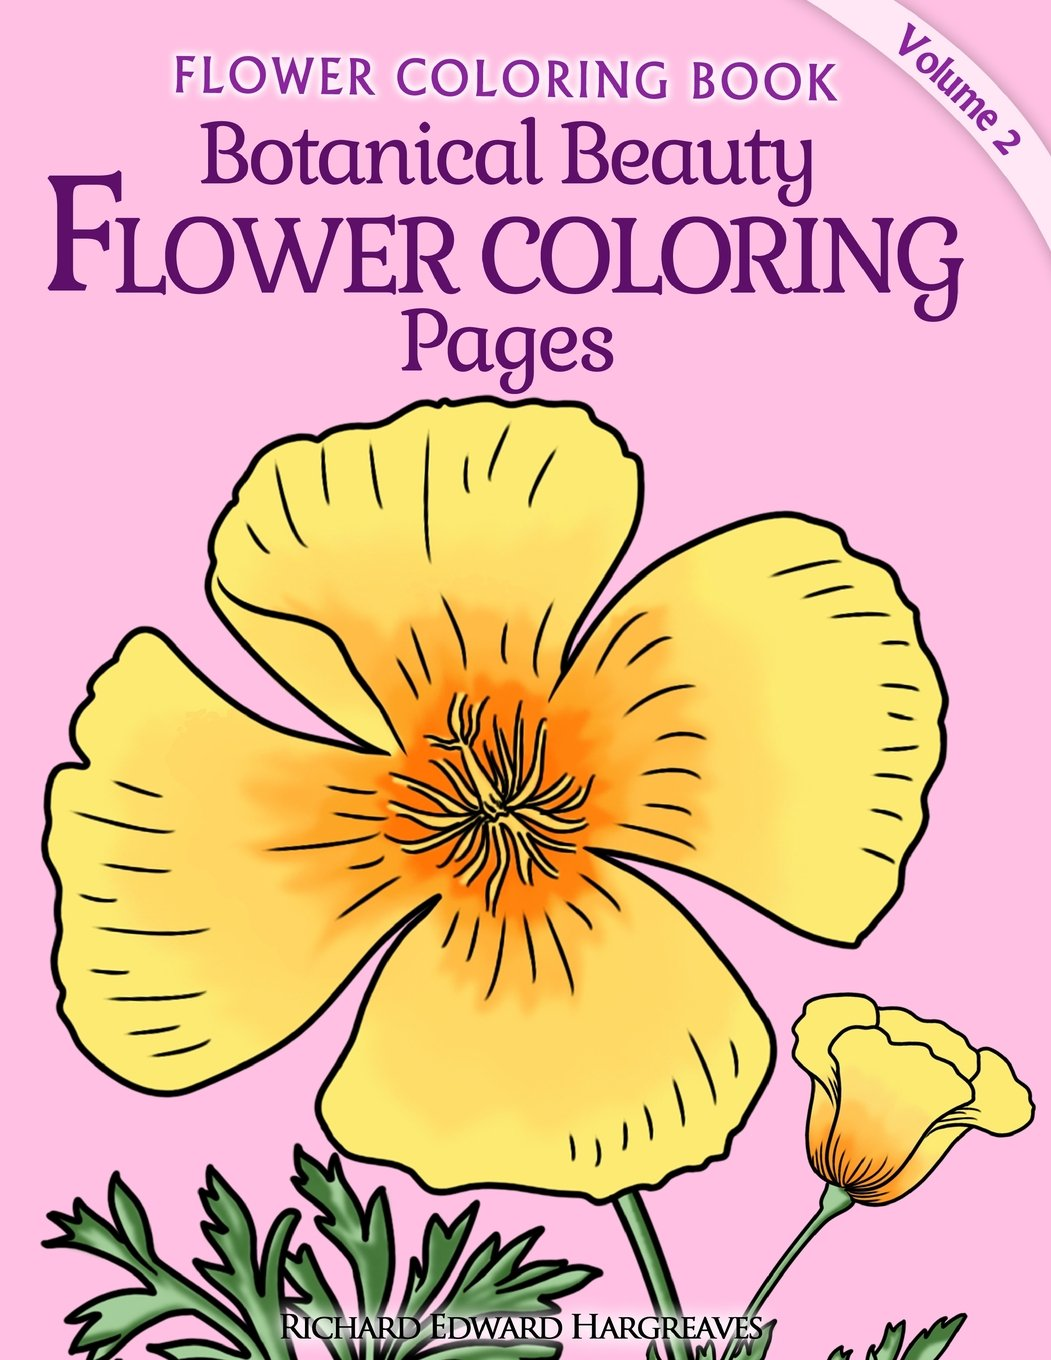 Botanical Beauty Flower Coloring Pages product image